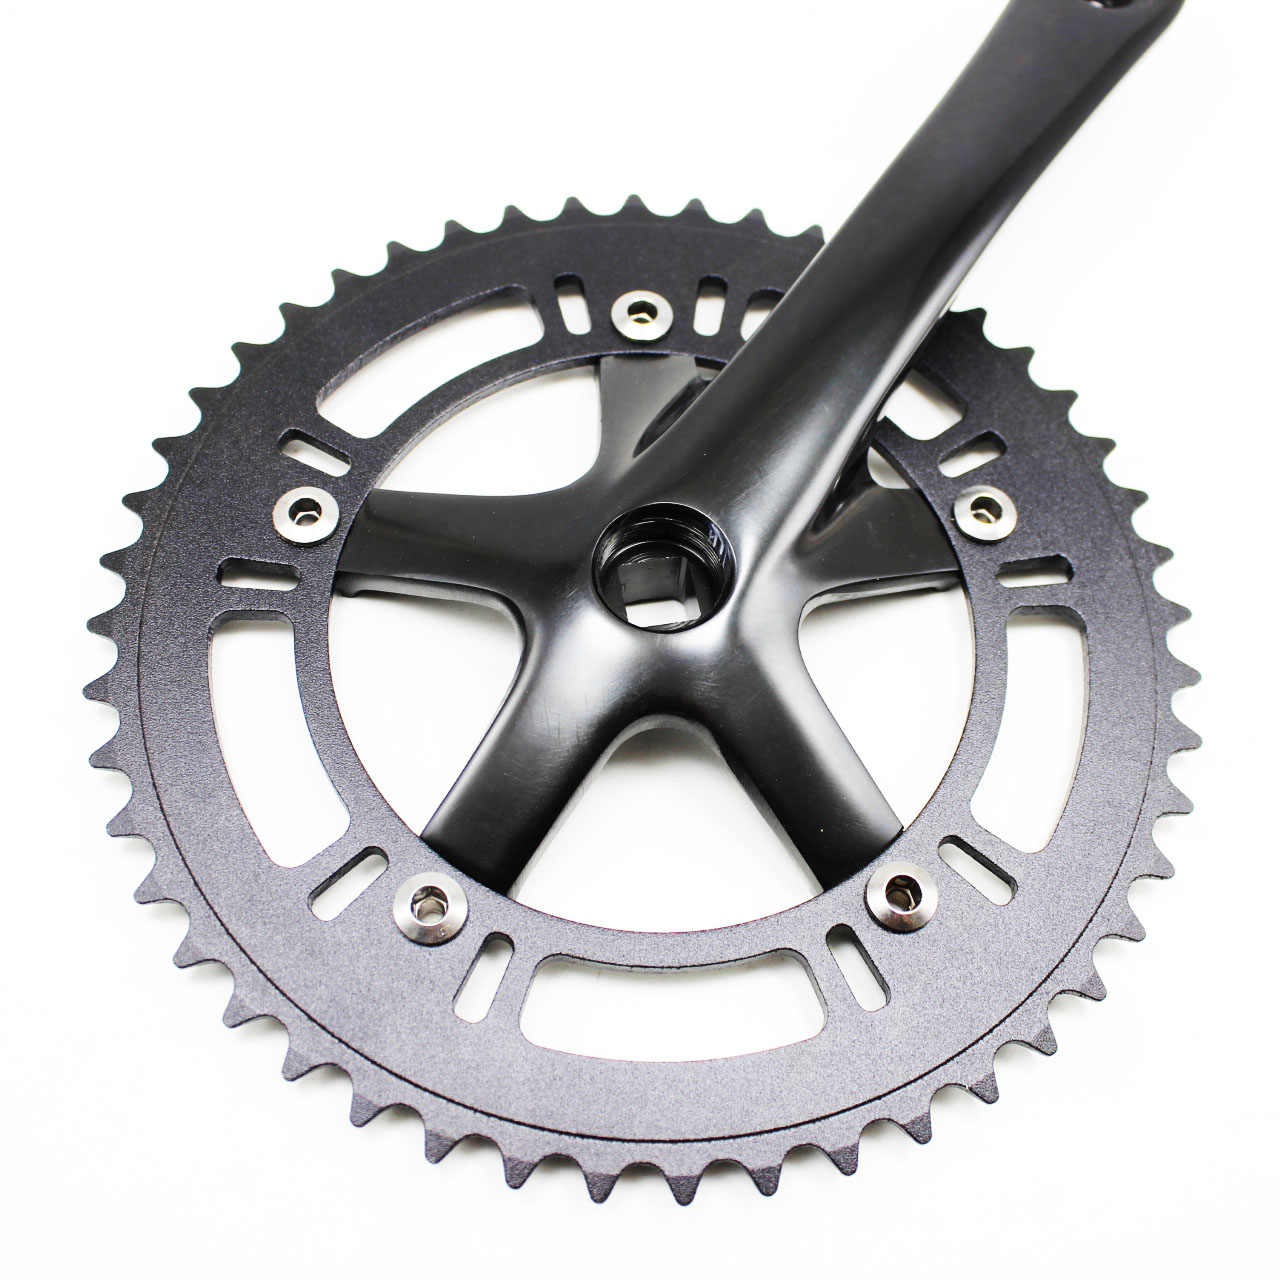 Crank  Crankset  170mm   46t Tooth Silver 130 BCD Single Speed Fixie Track